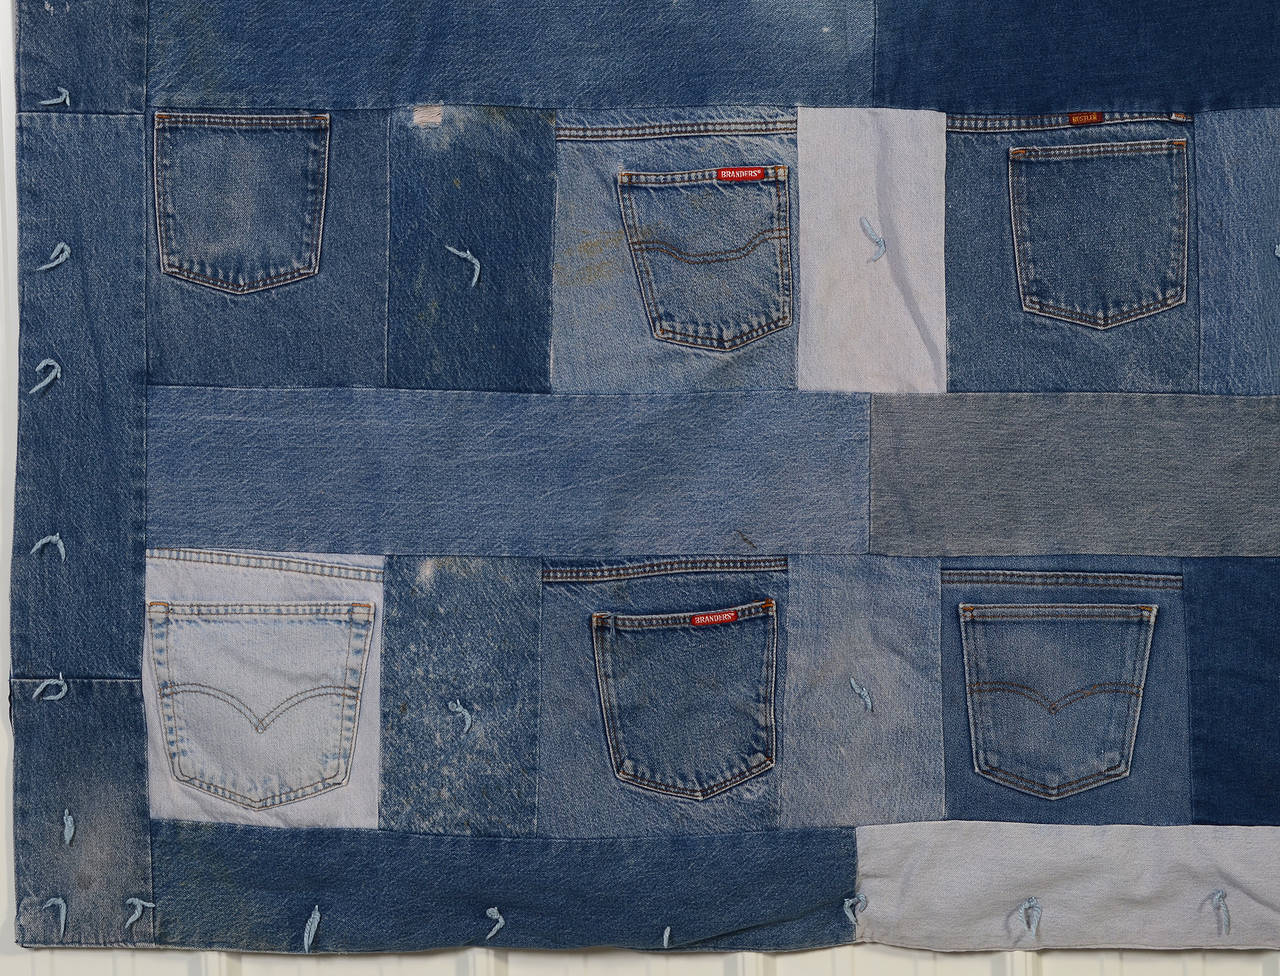 Denim Quilt with Jeans Pockets 2